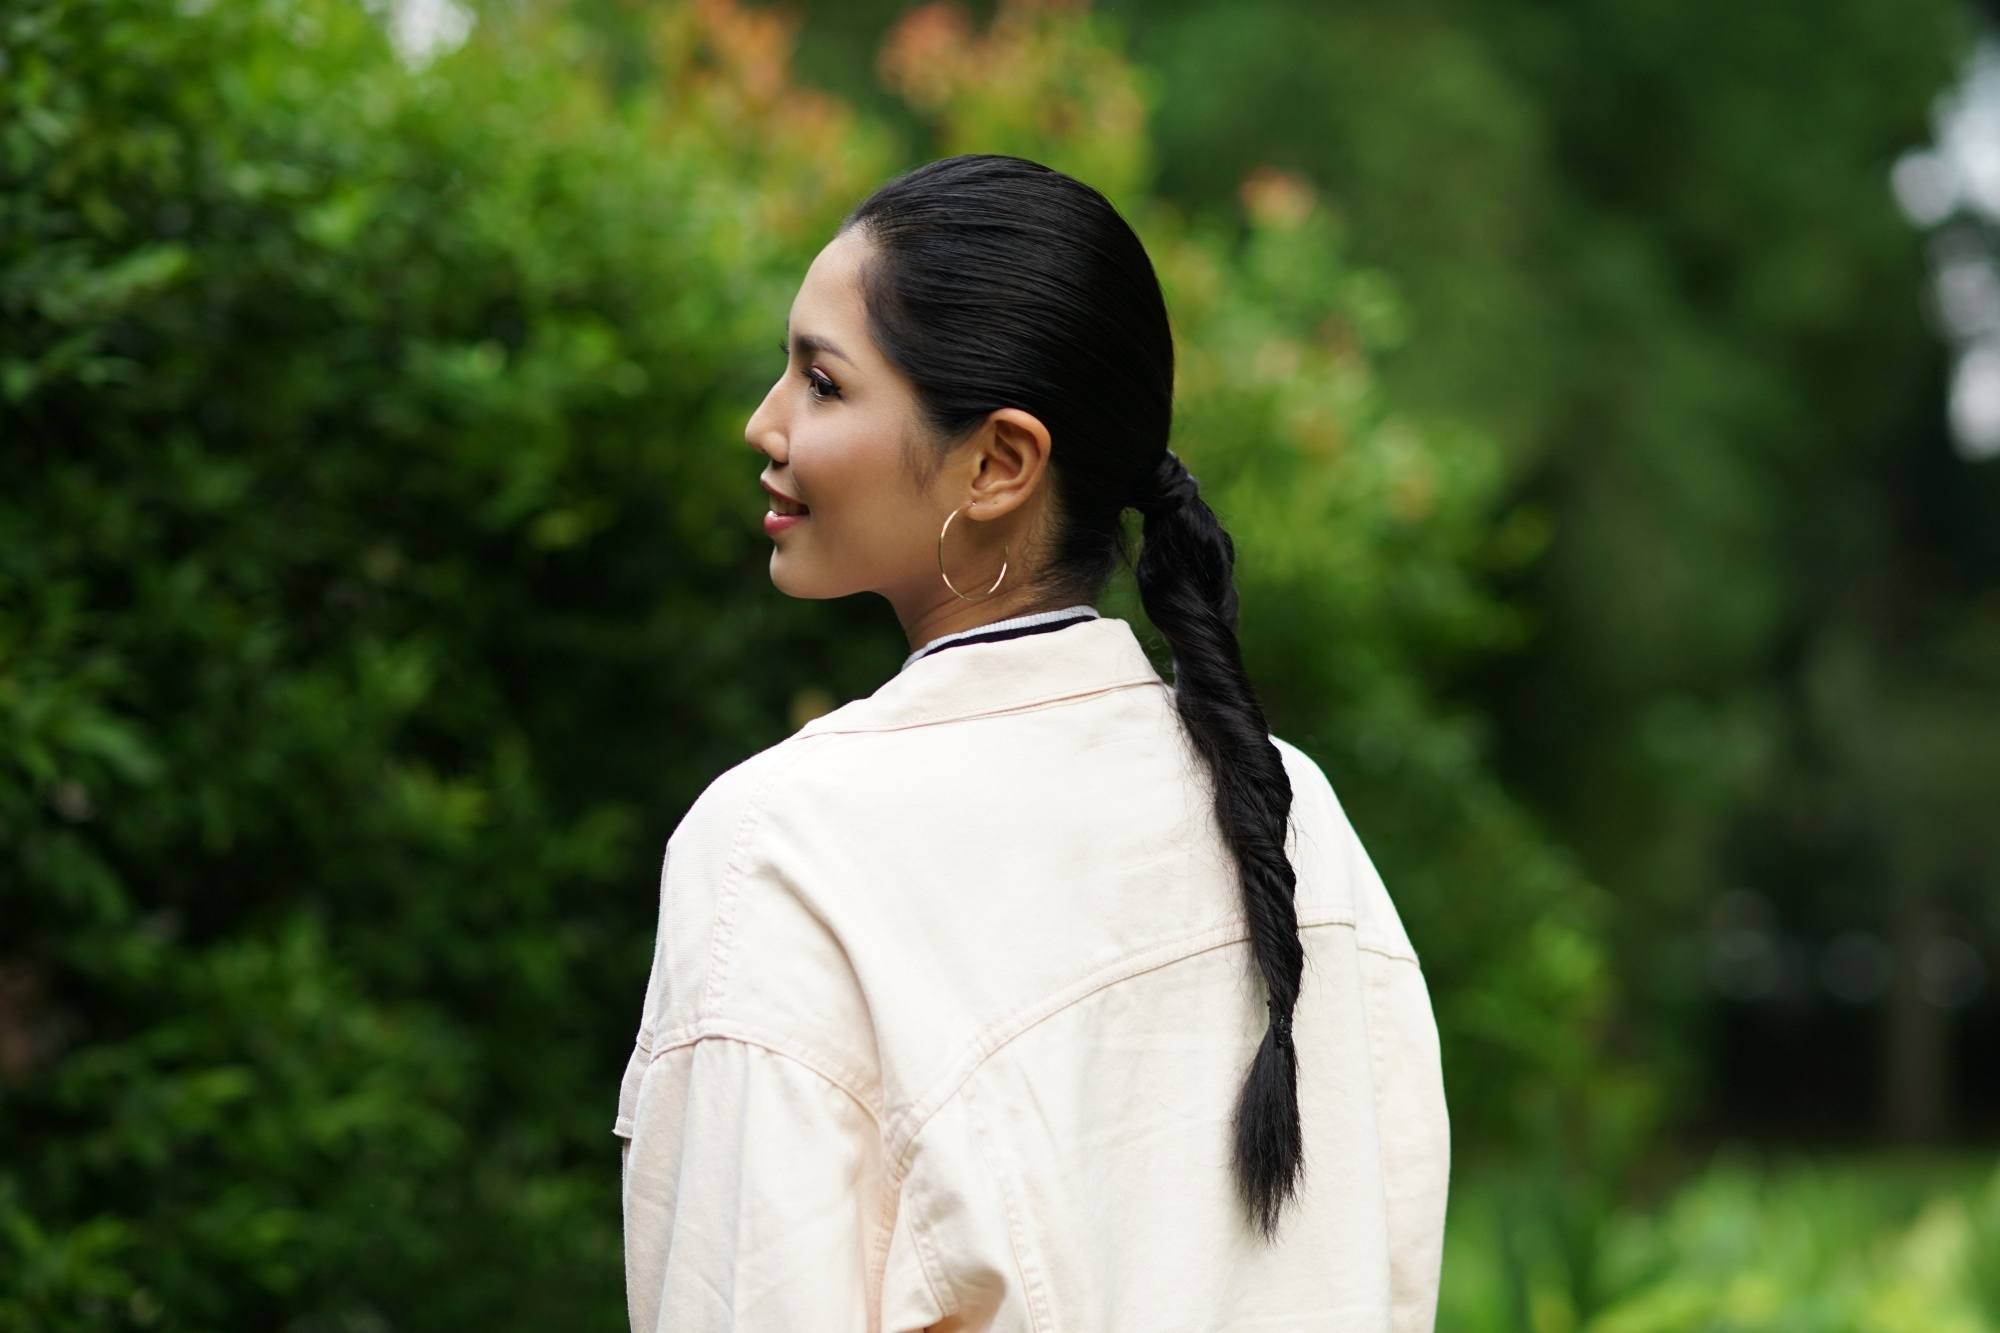 Summer-ready hair: Back shot of an Asian woman with long black hair in a double rope braid ponytail wearing a white jacket outdoors